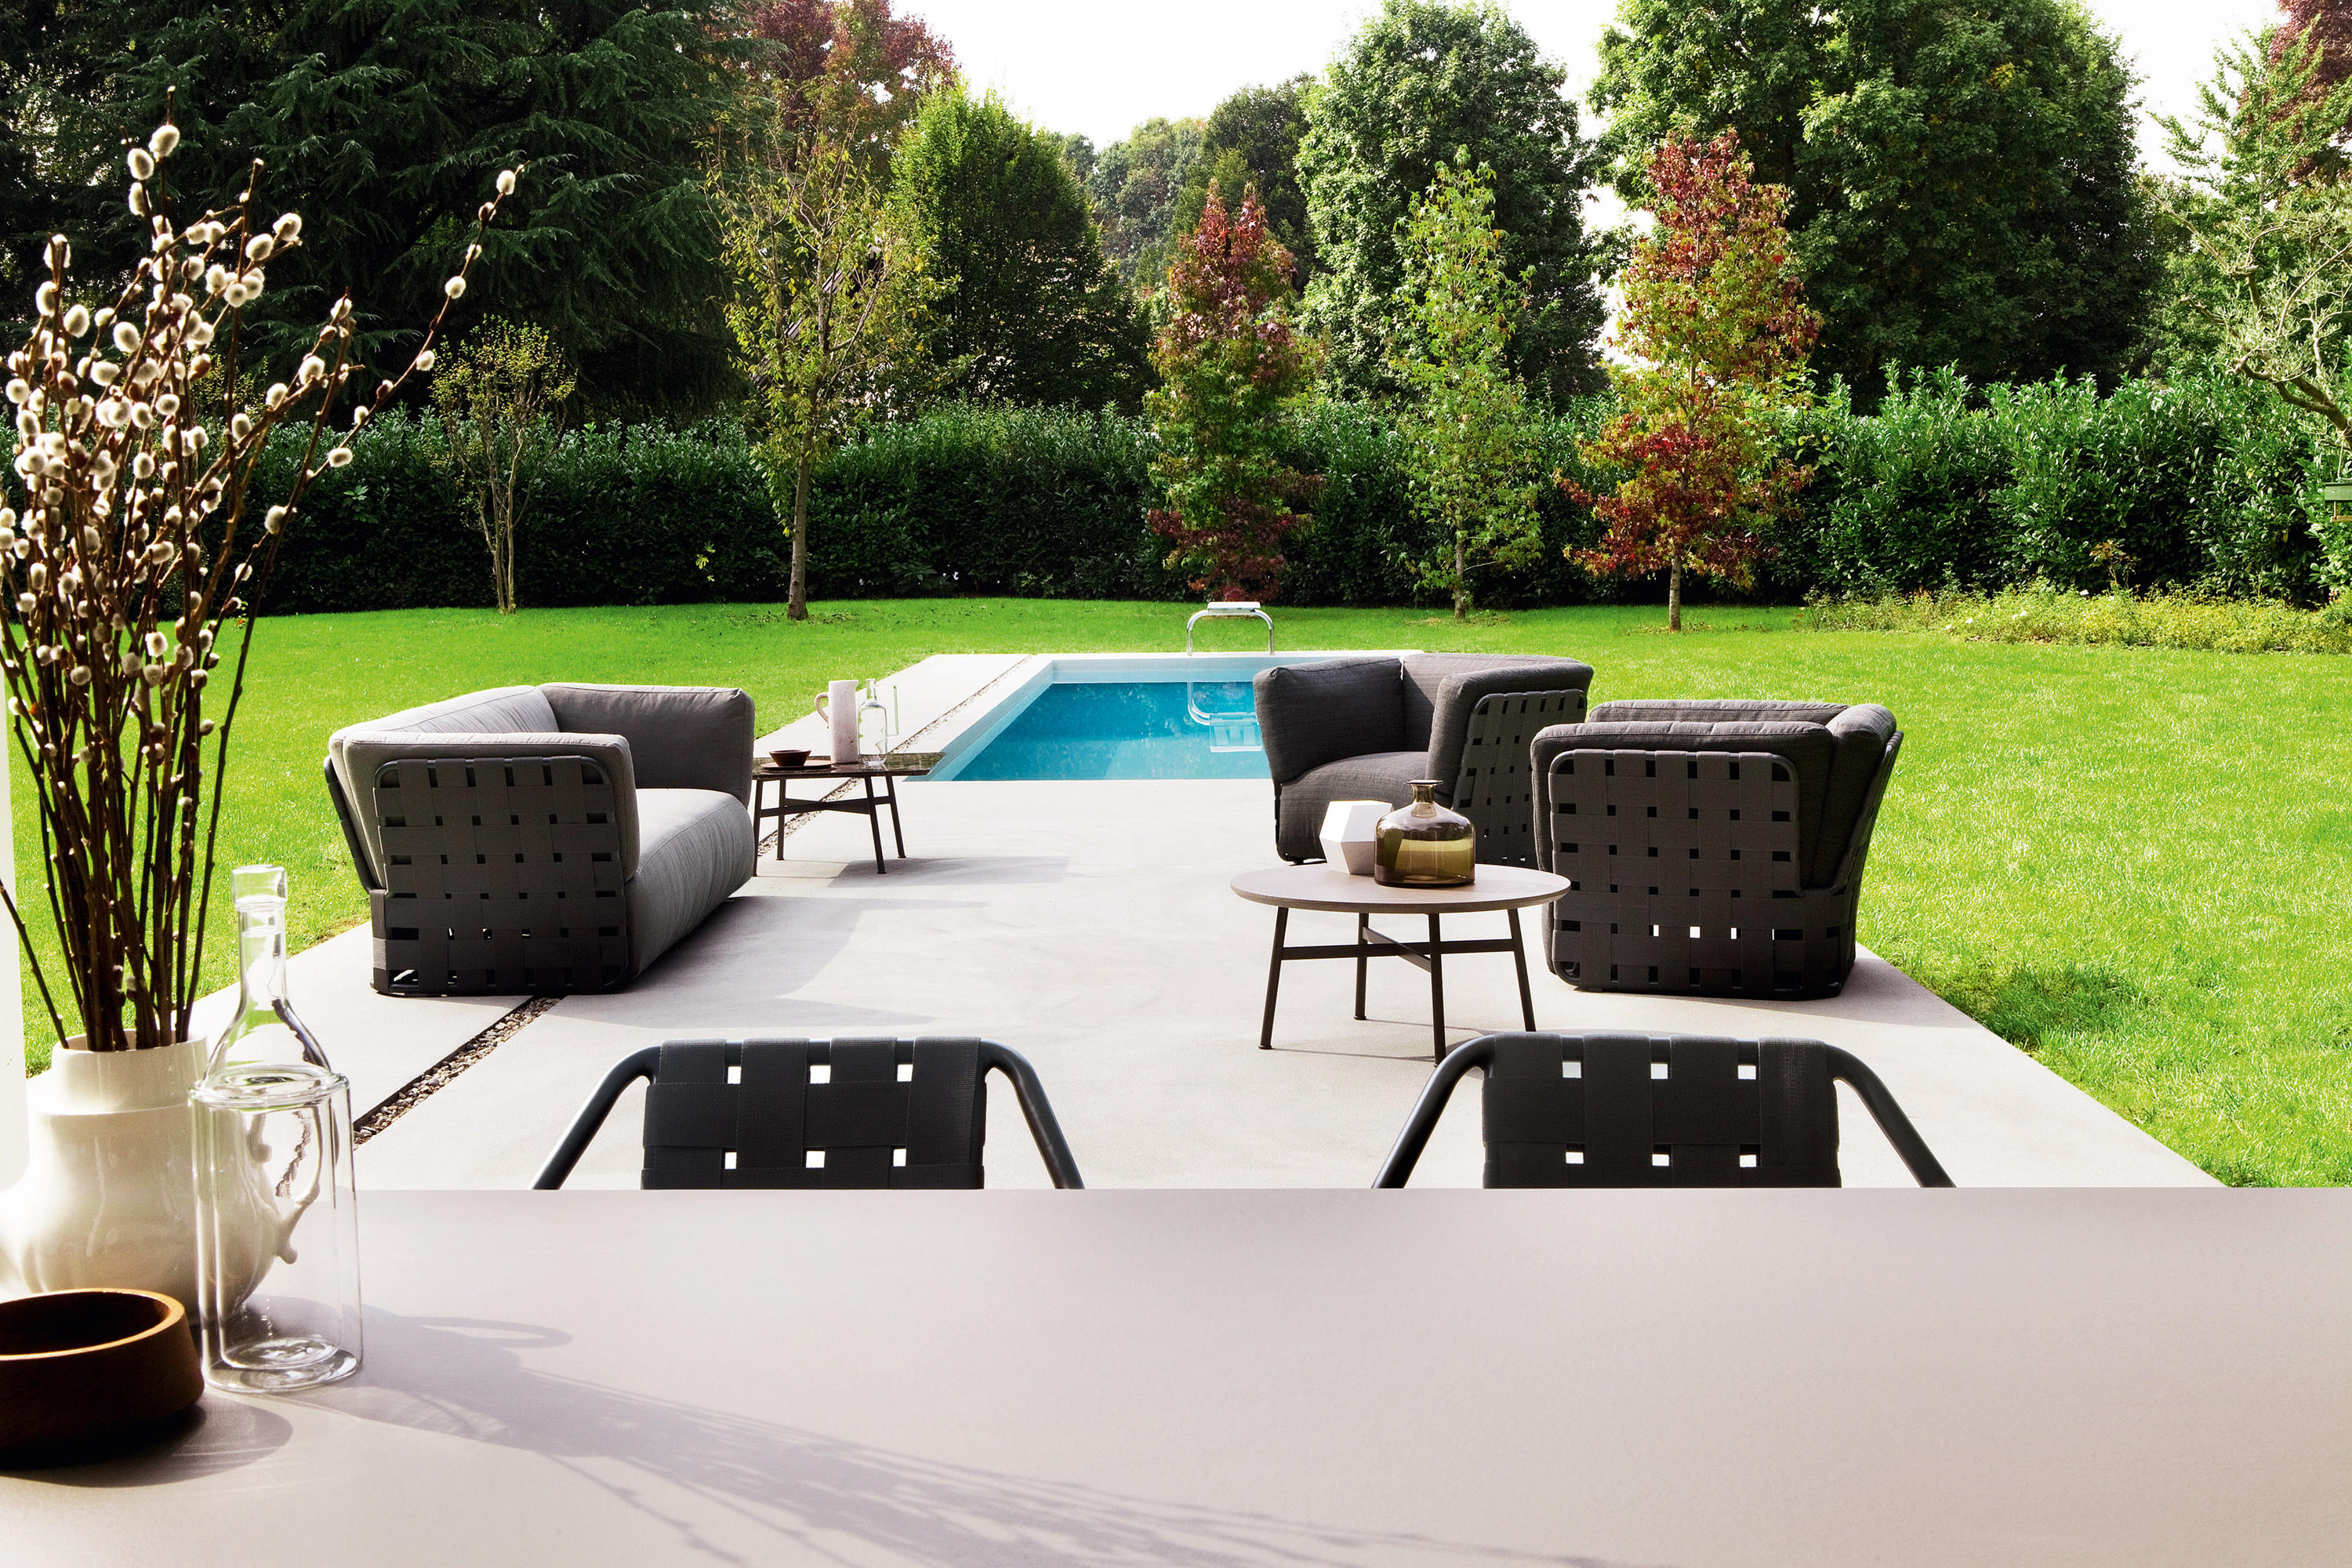 obi armchair - garden chairs from varaschin | architonic - Obi Catalogo Arredo Bagno